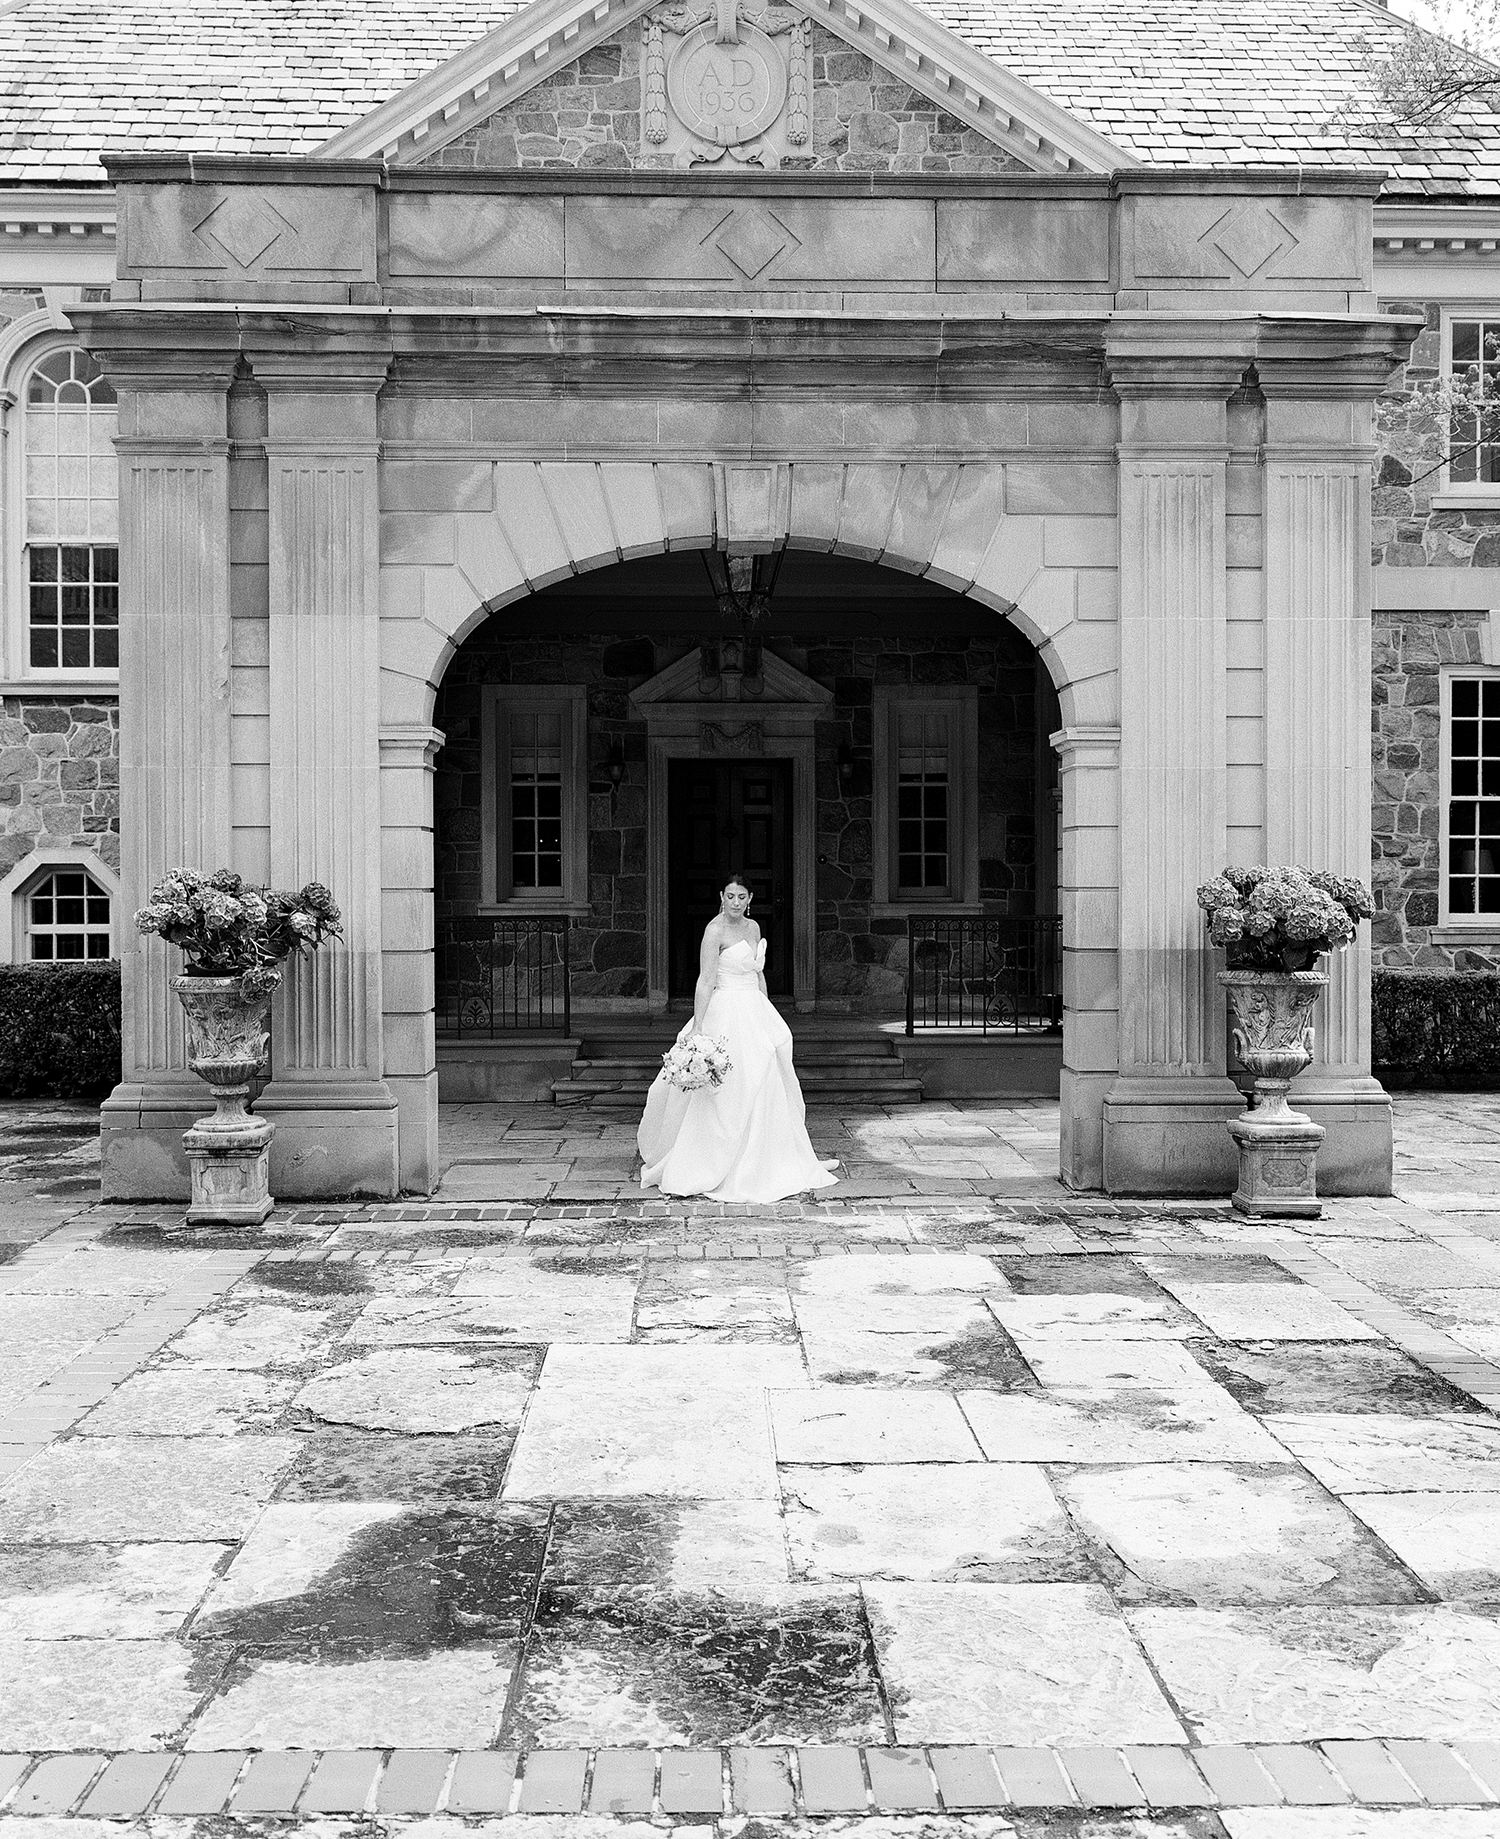 Graydon-Hall-wedding-TOronto-Kodak-trix400-Mamiya-7-Jenn-Mark-Graydon-HallWedding-on-film-analog-TRIX-KODAK-portrait-of-Bride.jpg